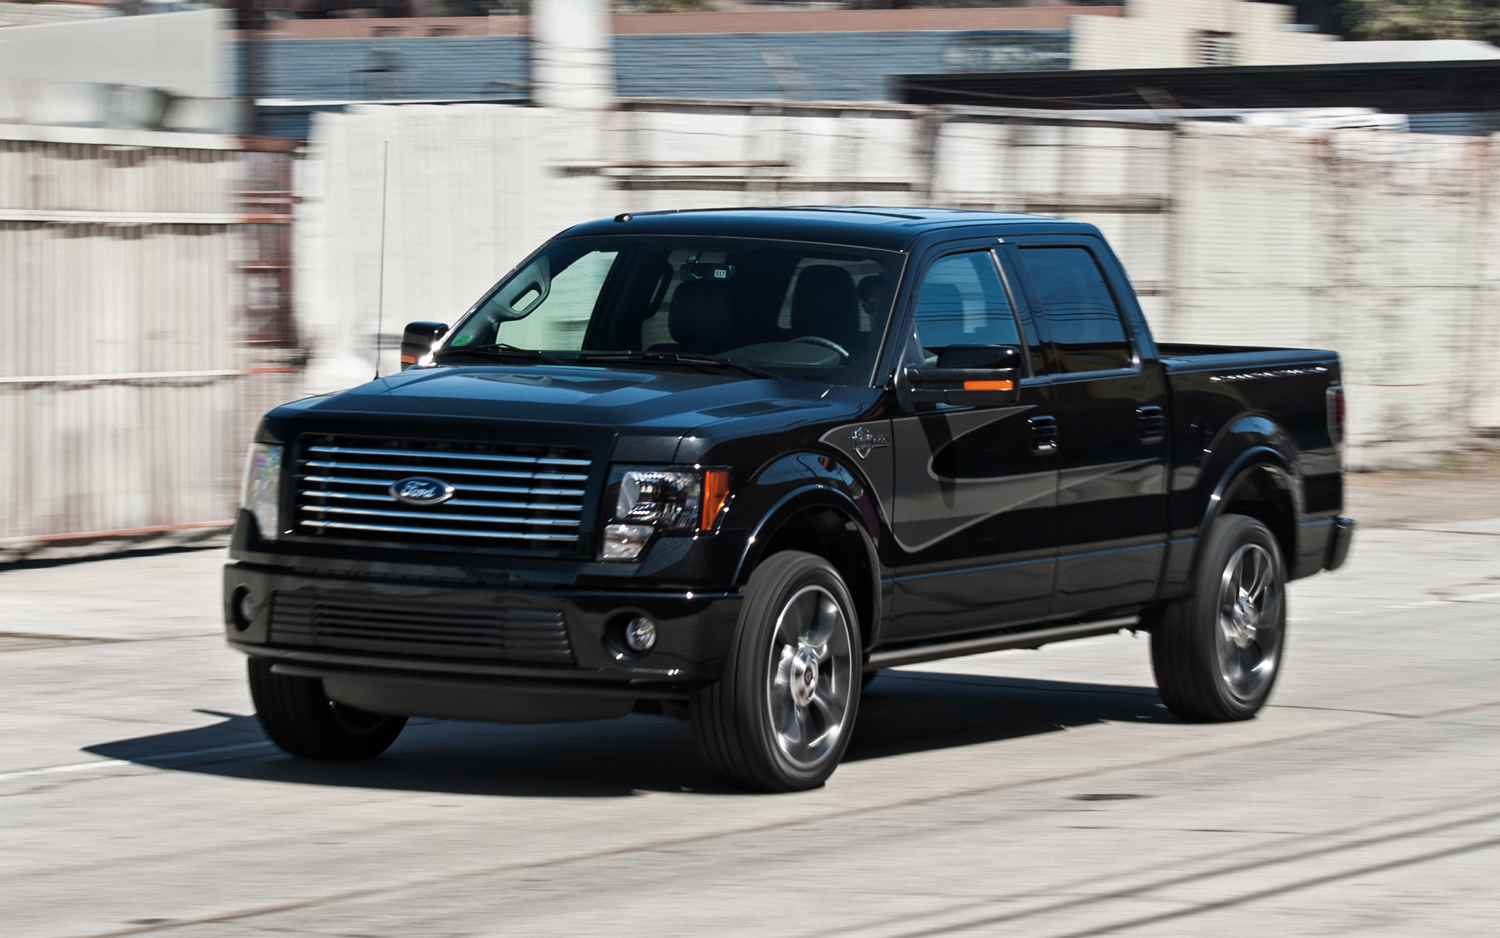 2012 ford f 150 supercrew harley davidson edition first test [ 1500 x 938 Pixel ]